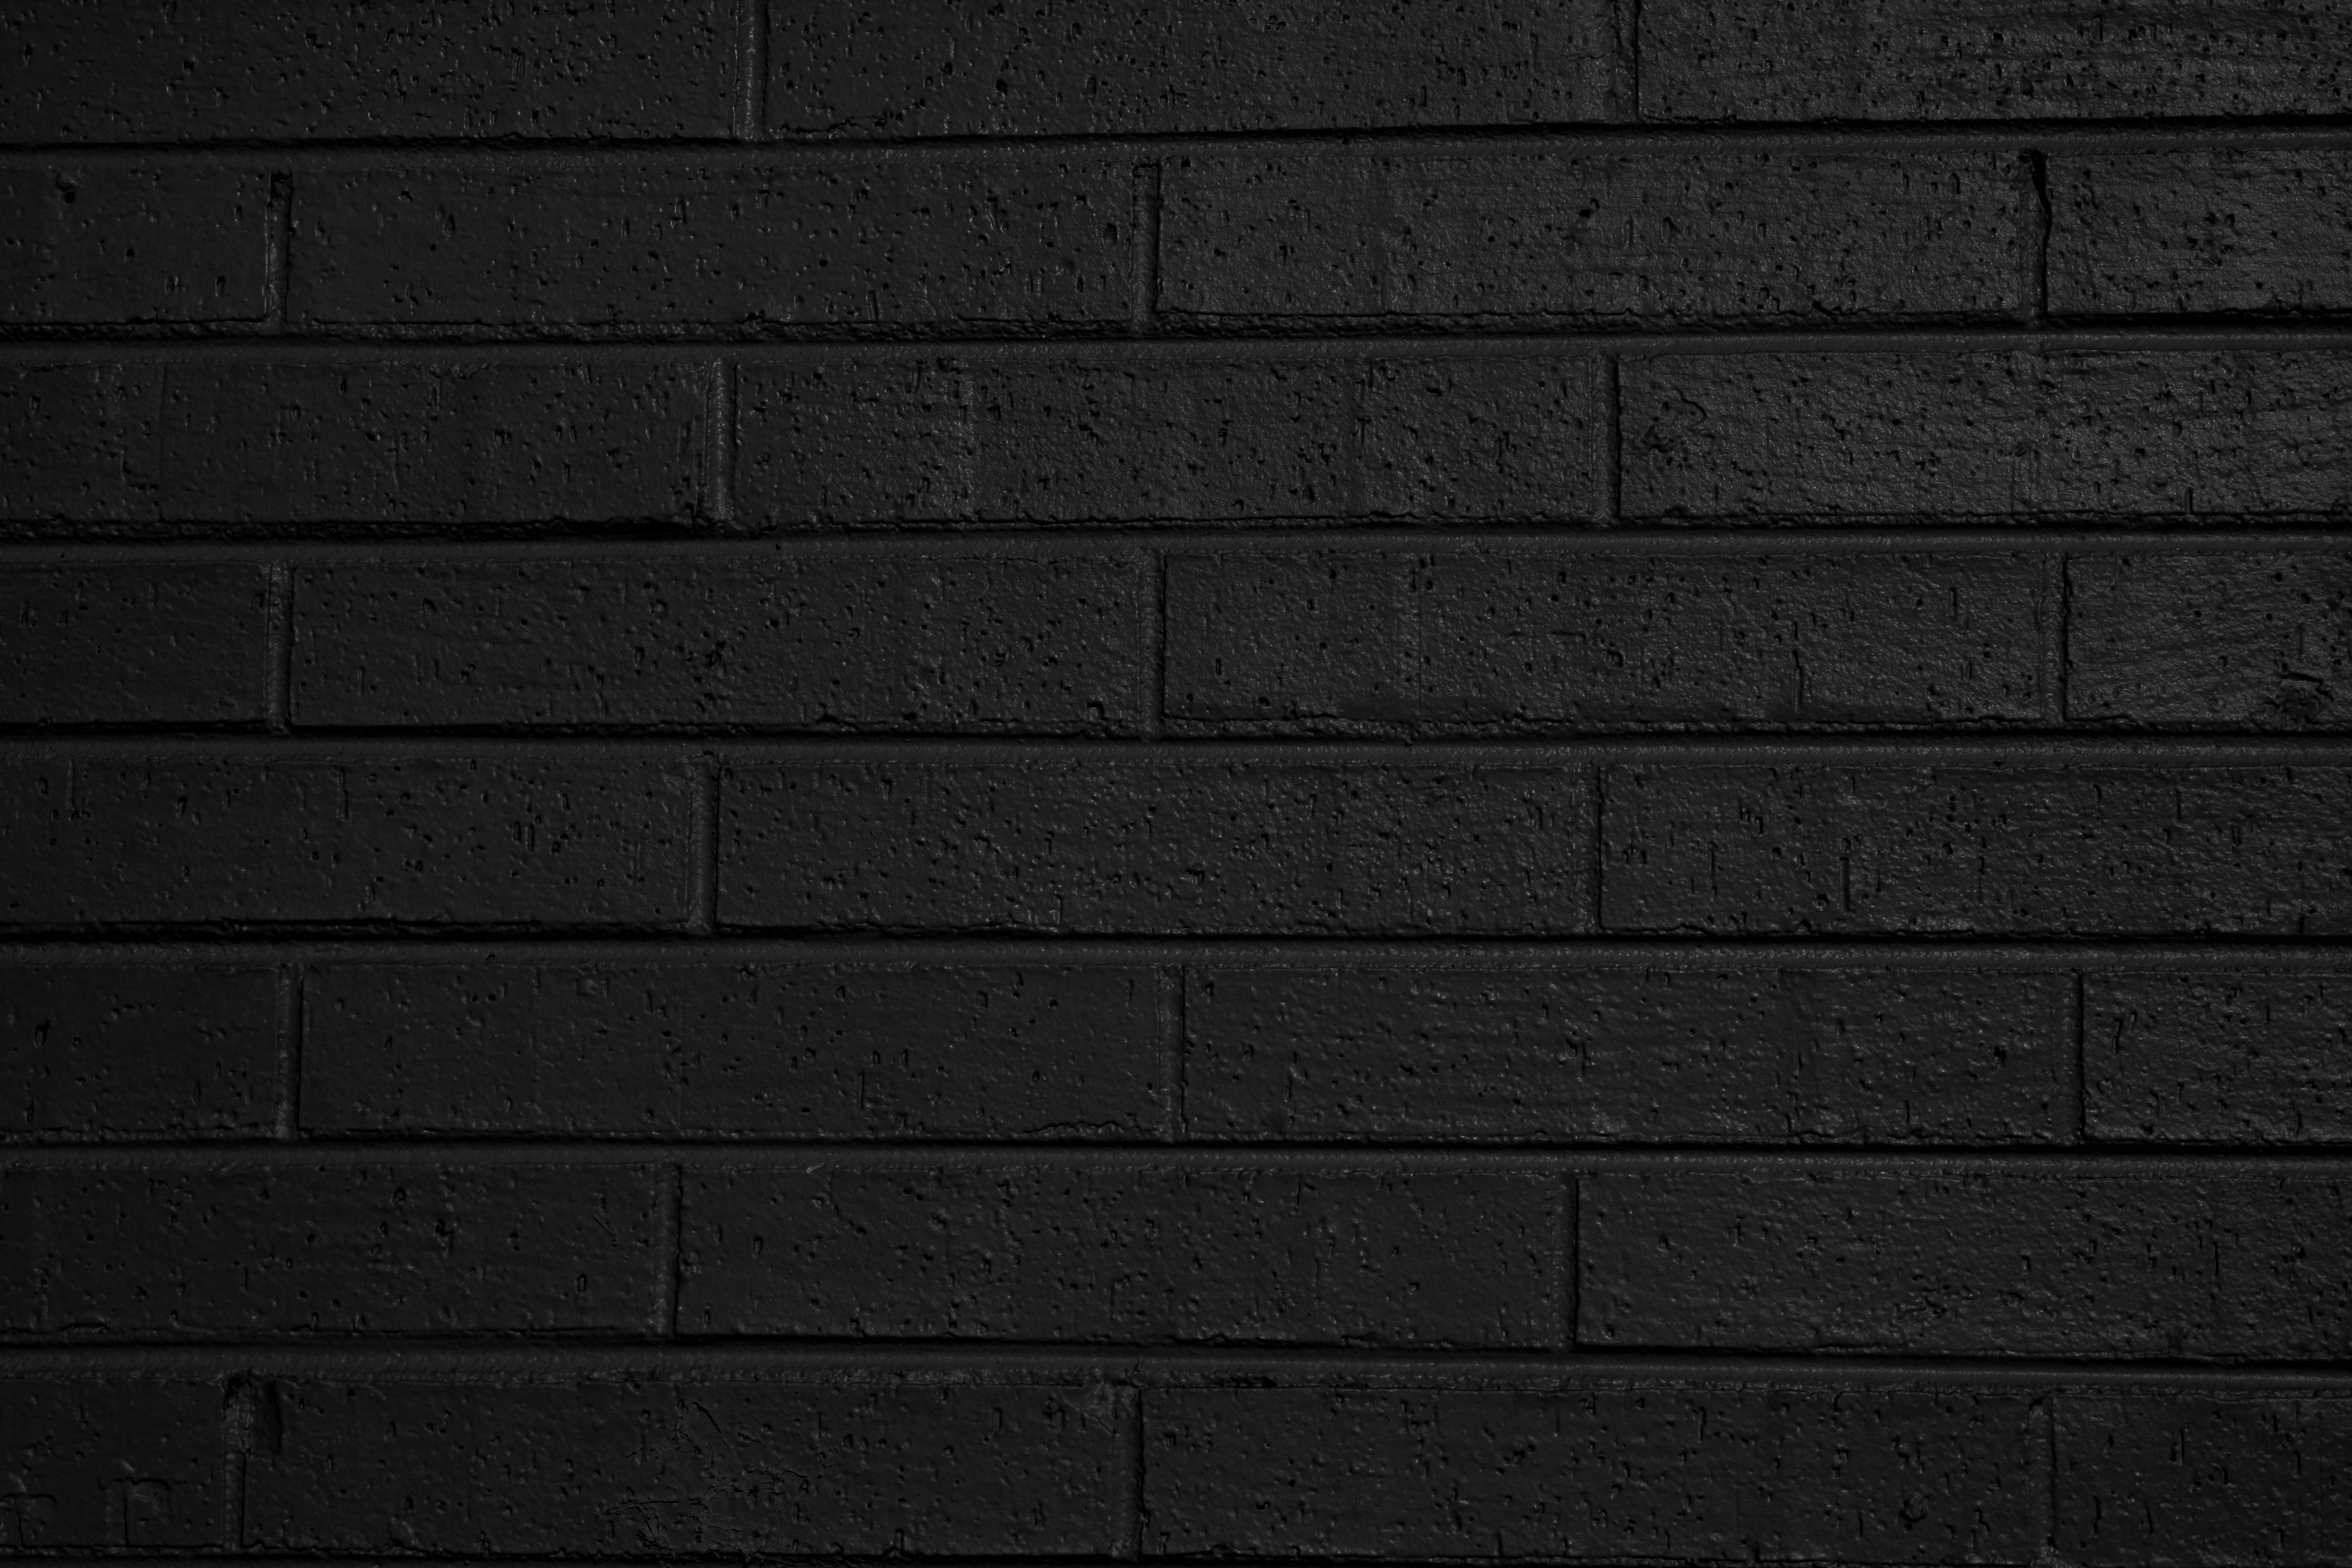 Black Brick Wall Black Painted Brick Wall Texture Picture Free Photograph